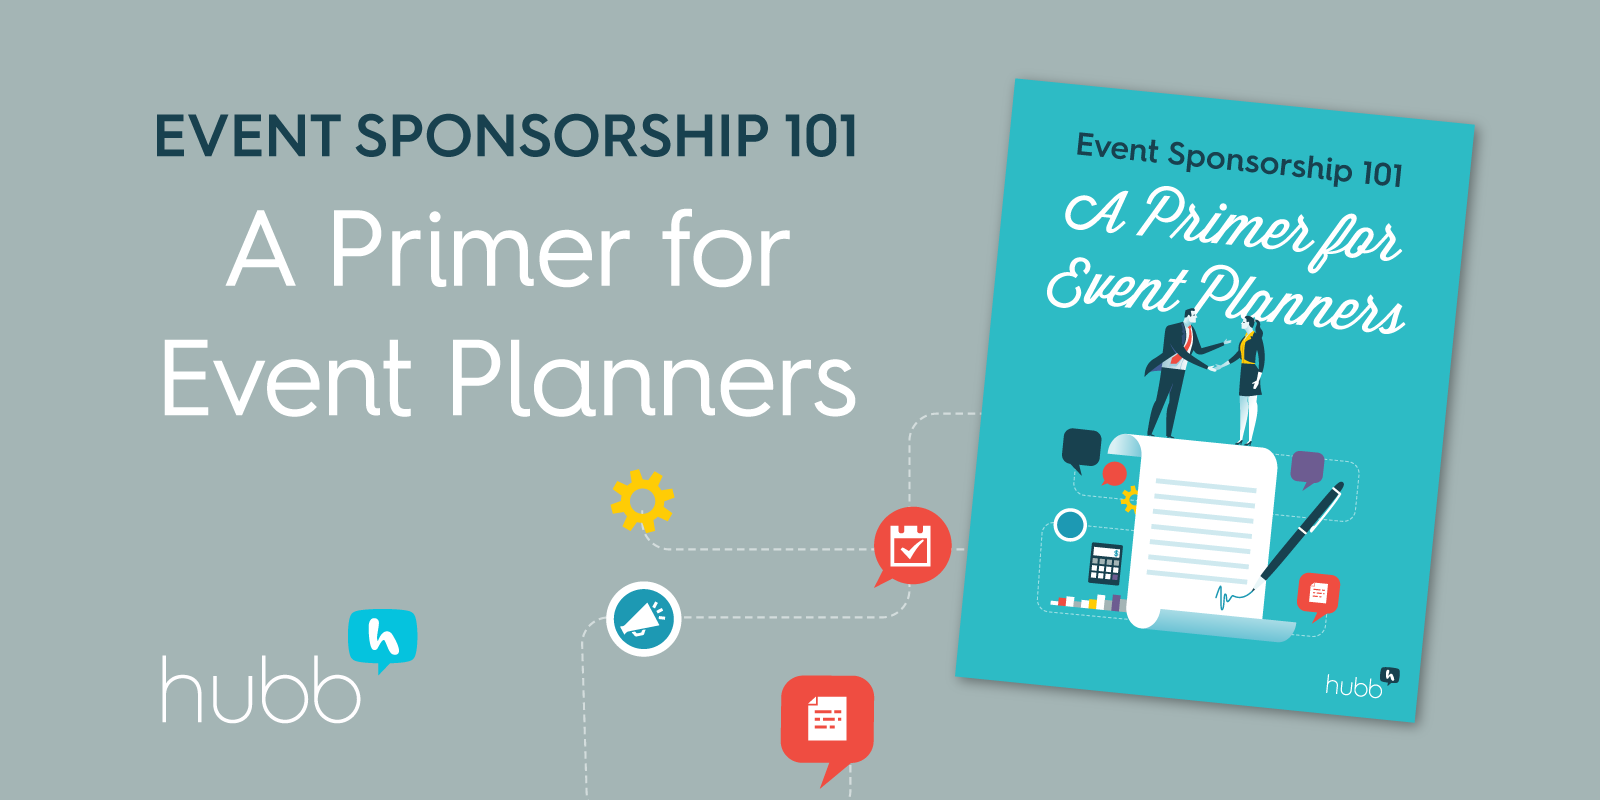 Event sponsorship 101: How to get your event sponsored